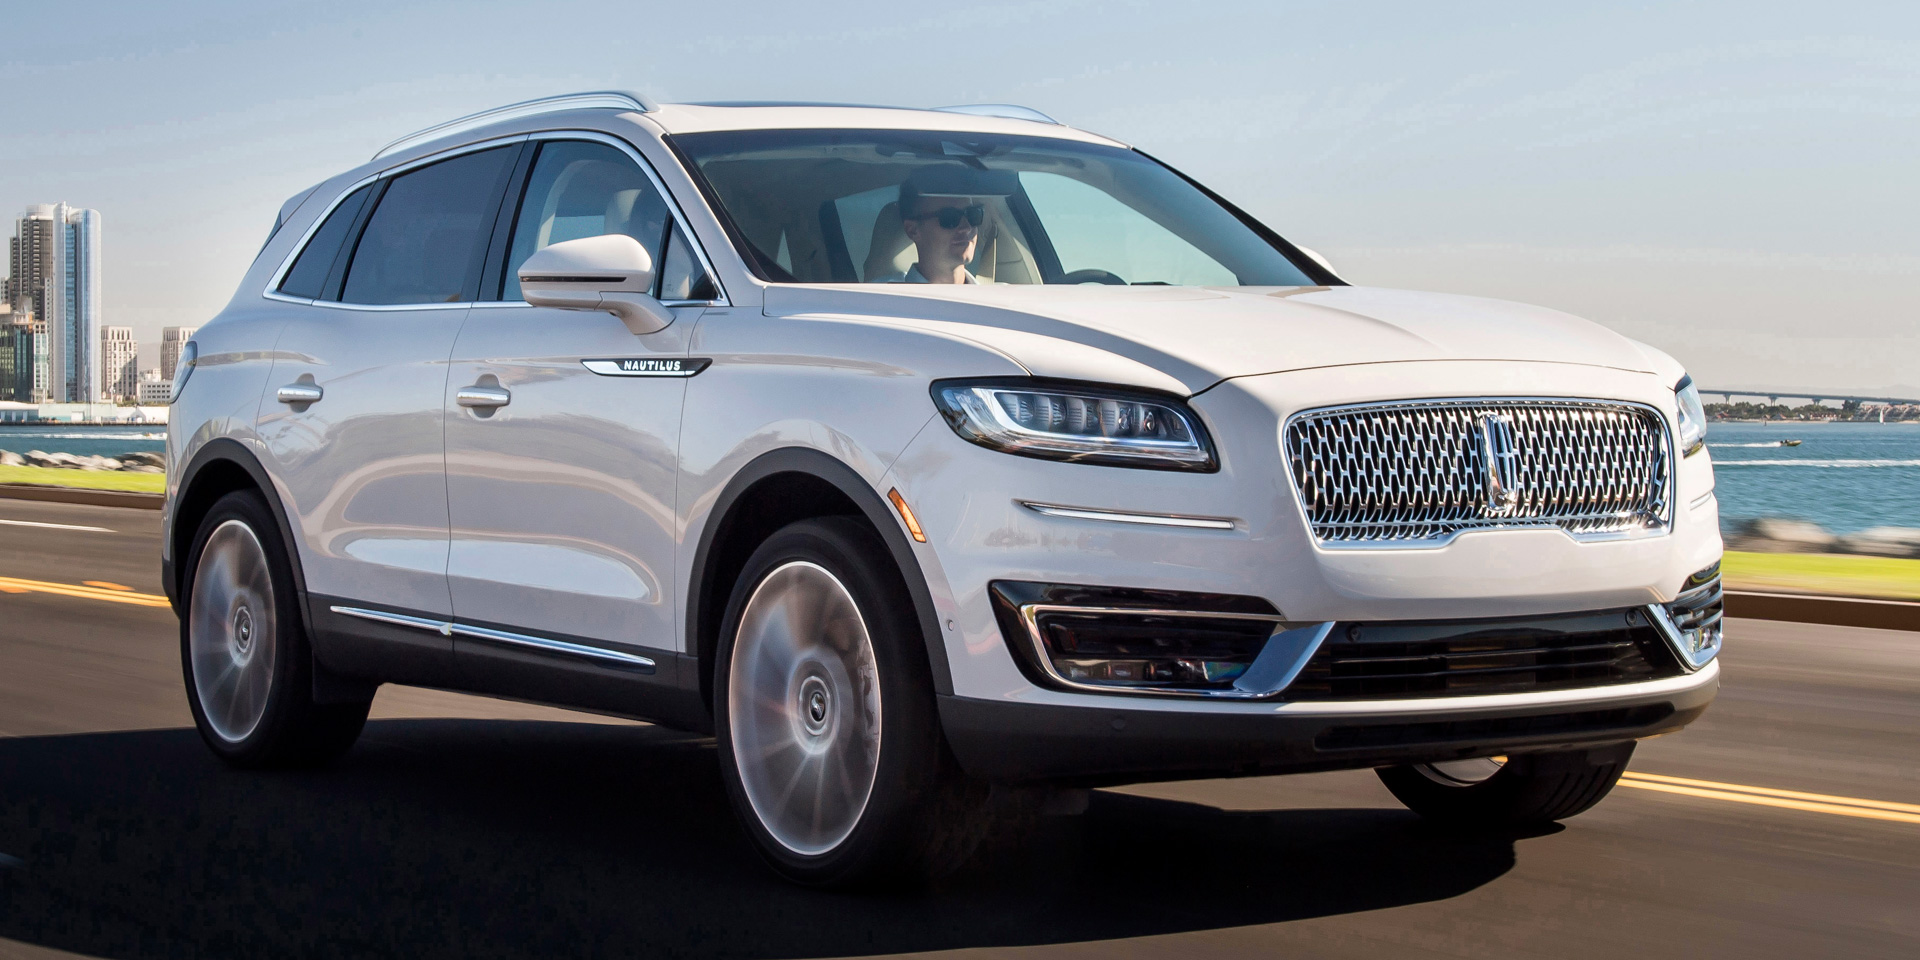 2019 Lincoln Nautilus Vehicles On Display Chicago Auto Show